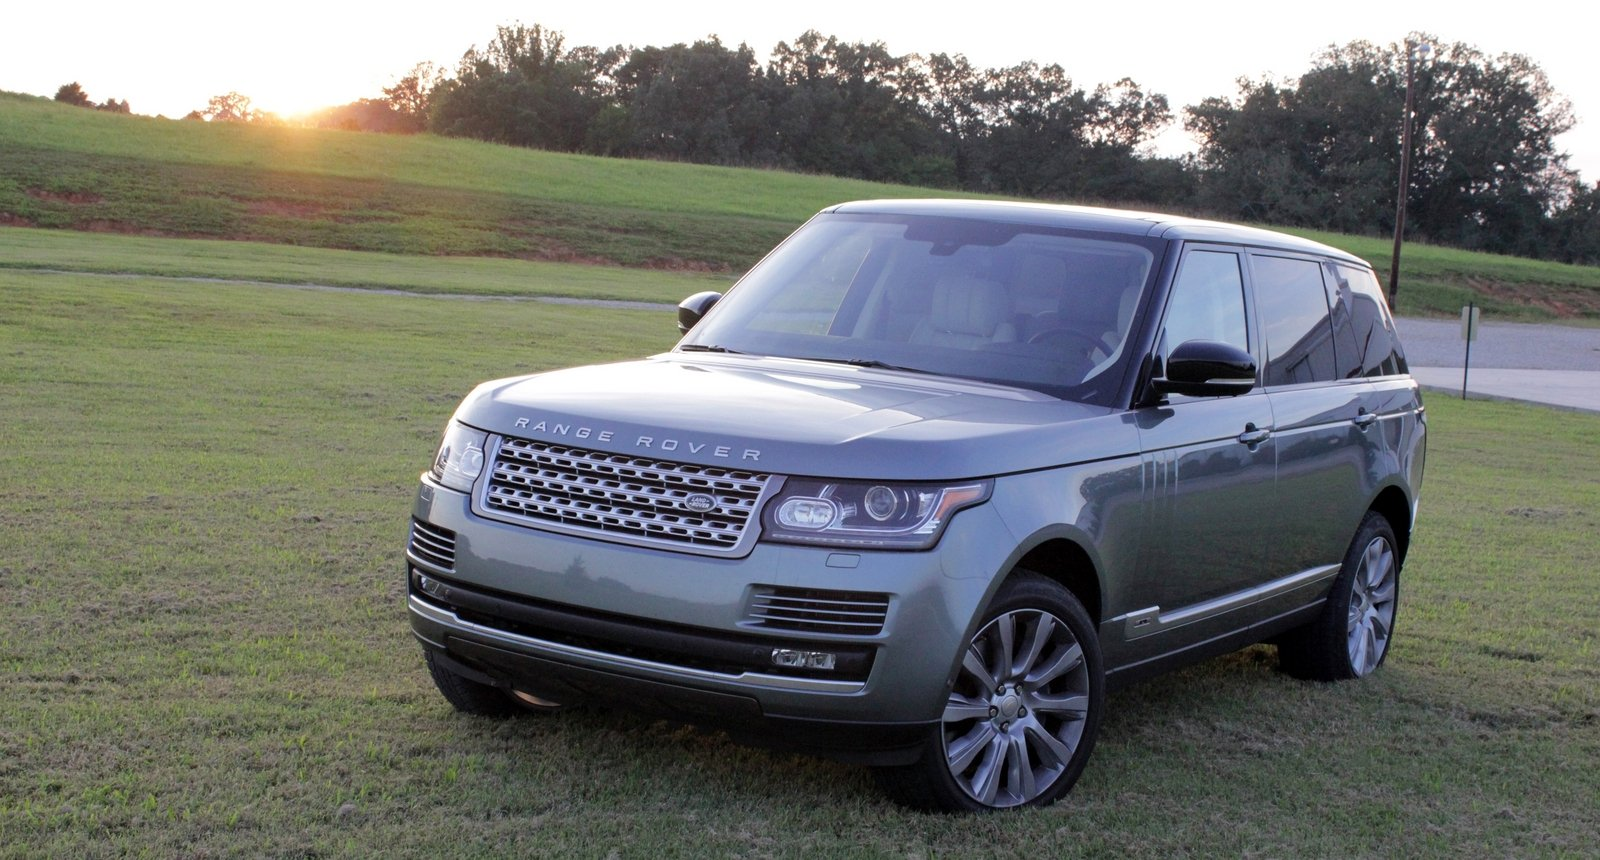 2014 land rover range rover lwb driven pictures photos wallpapers and videos top speed. Black Bedroom Furniture Sets. Home Design Ideas